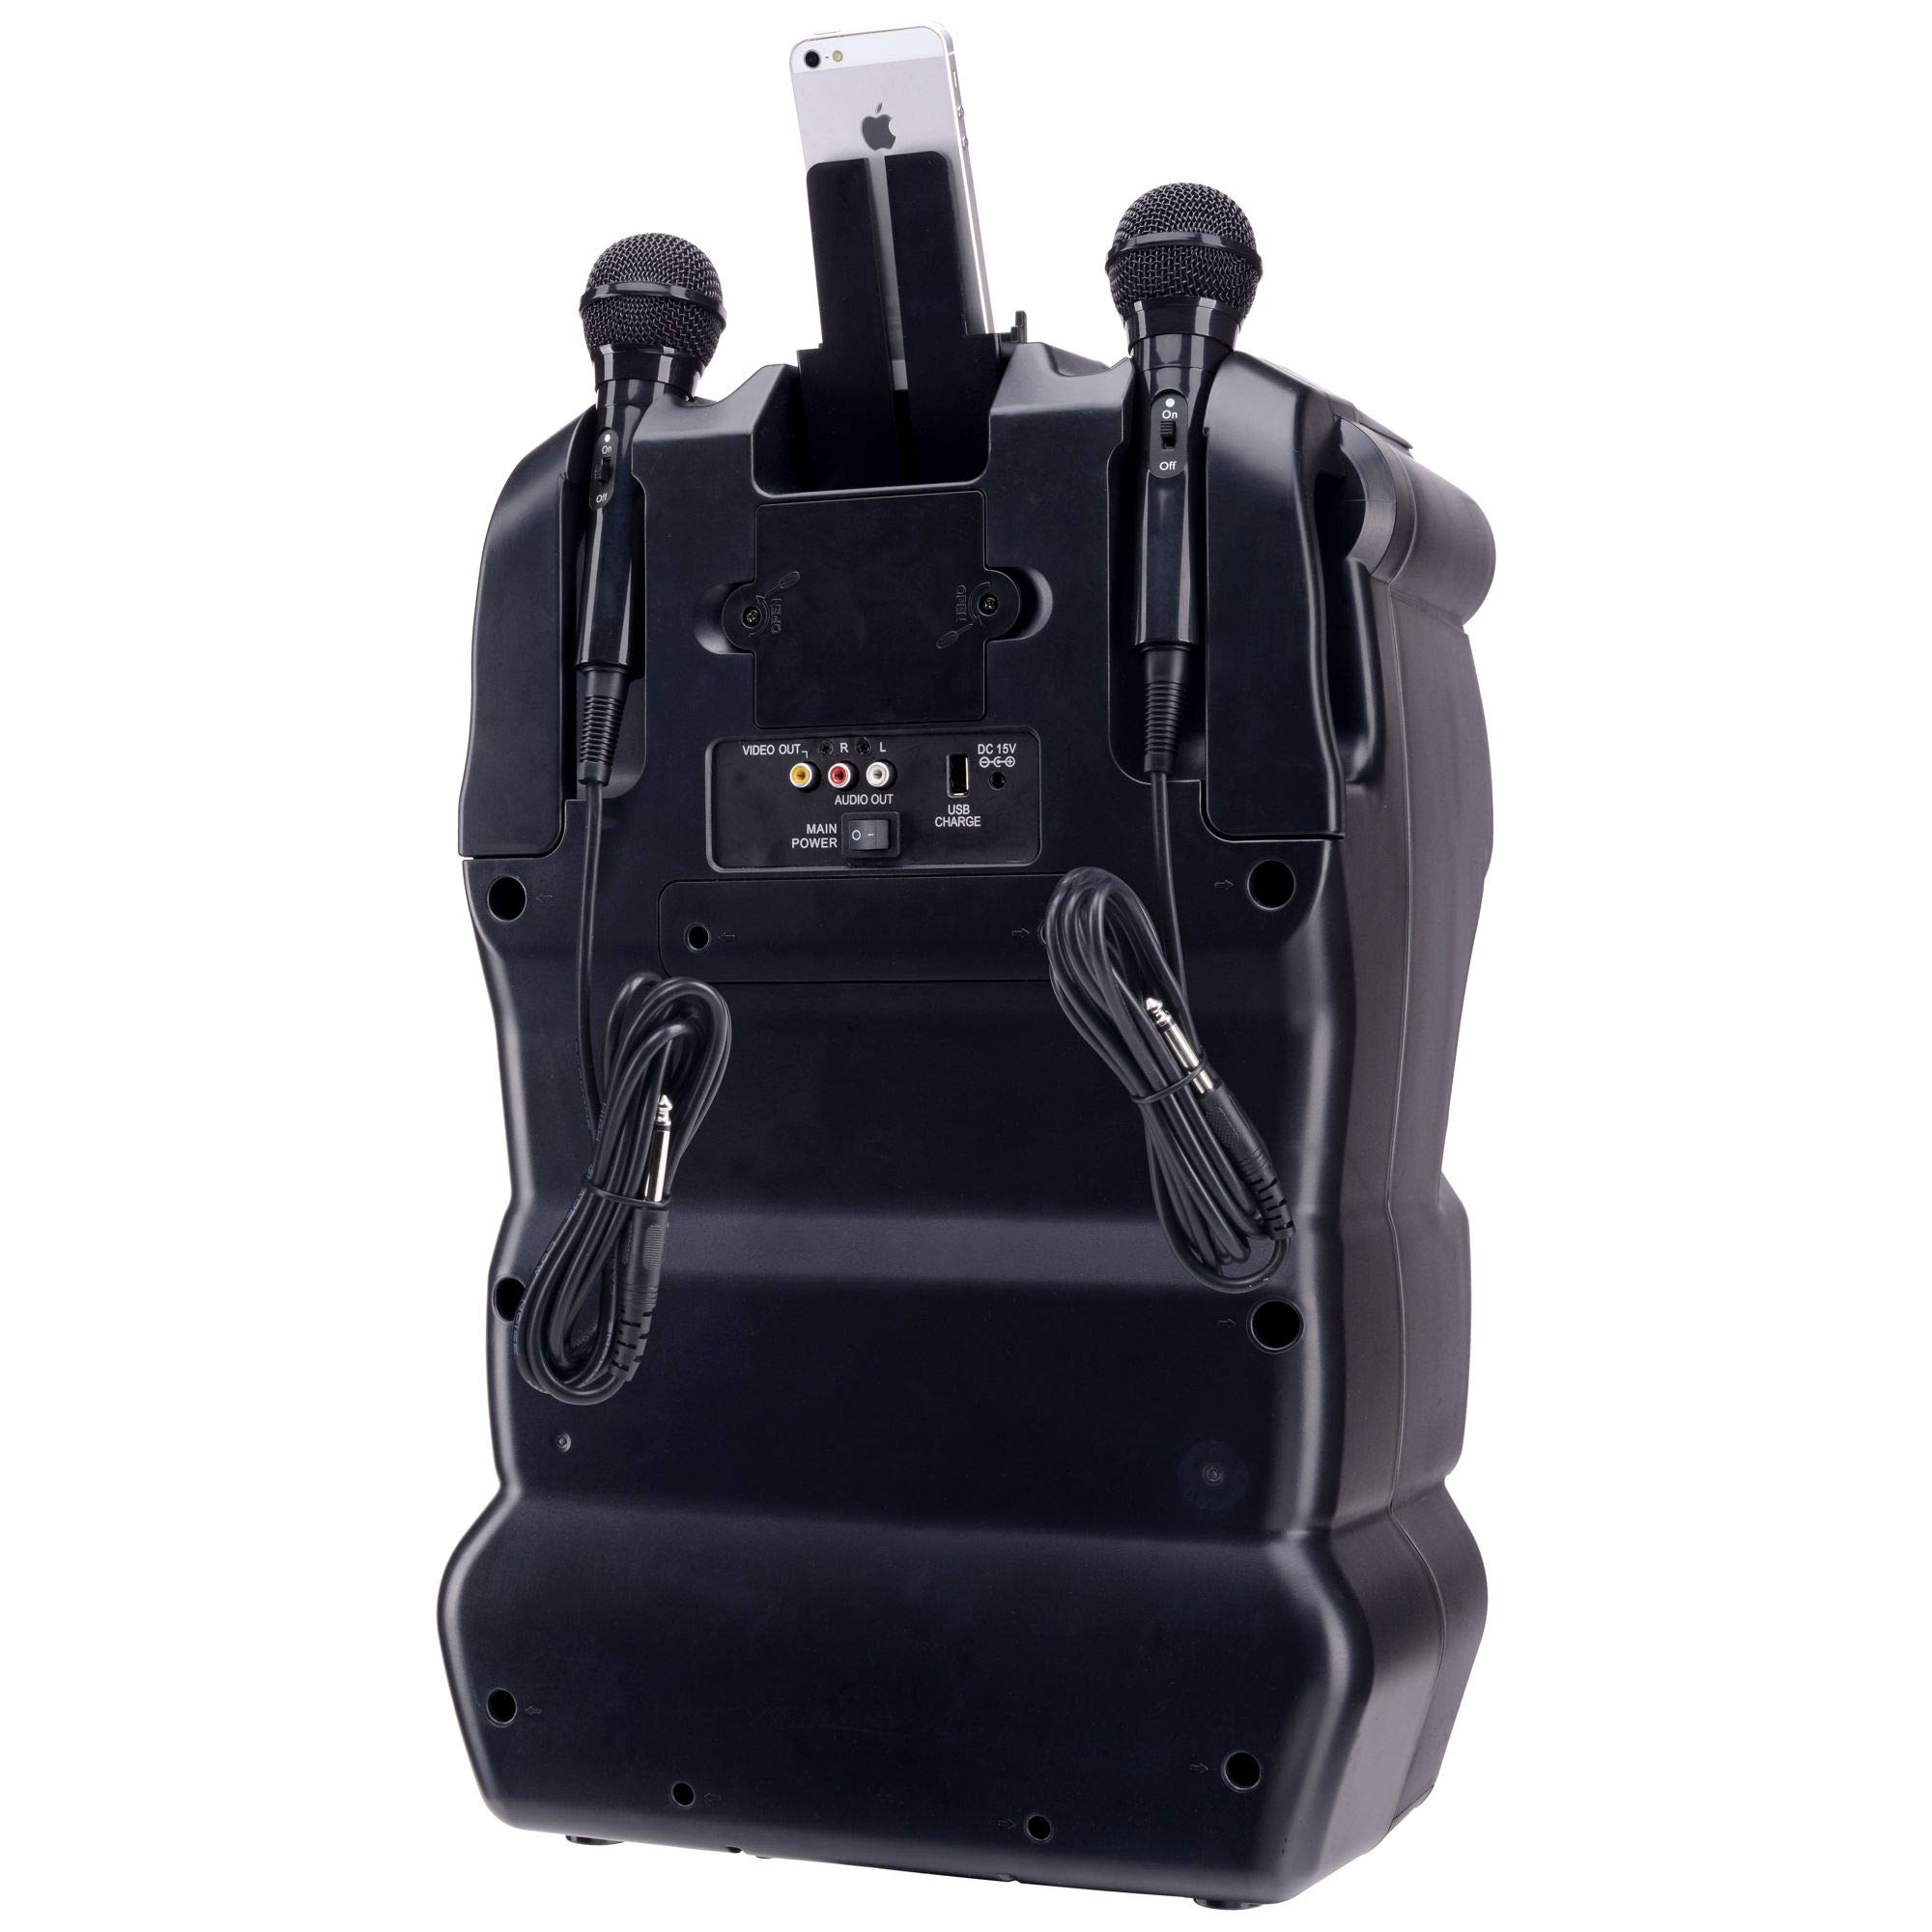 Karaoke USA GF920 Outdoor Portable Professional Bluetooth Karaoke Machine and PA System with Rechargeable Lithium Battery by Karaoke USA (Image #13)